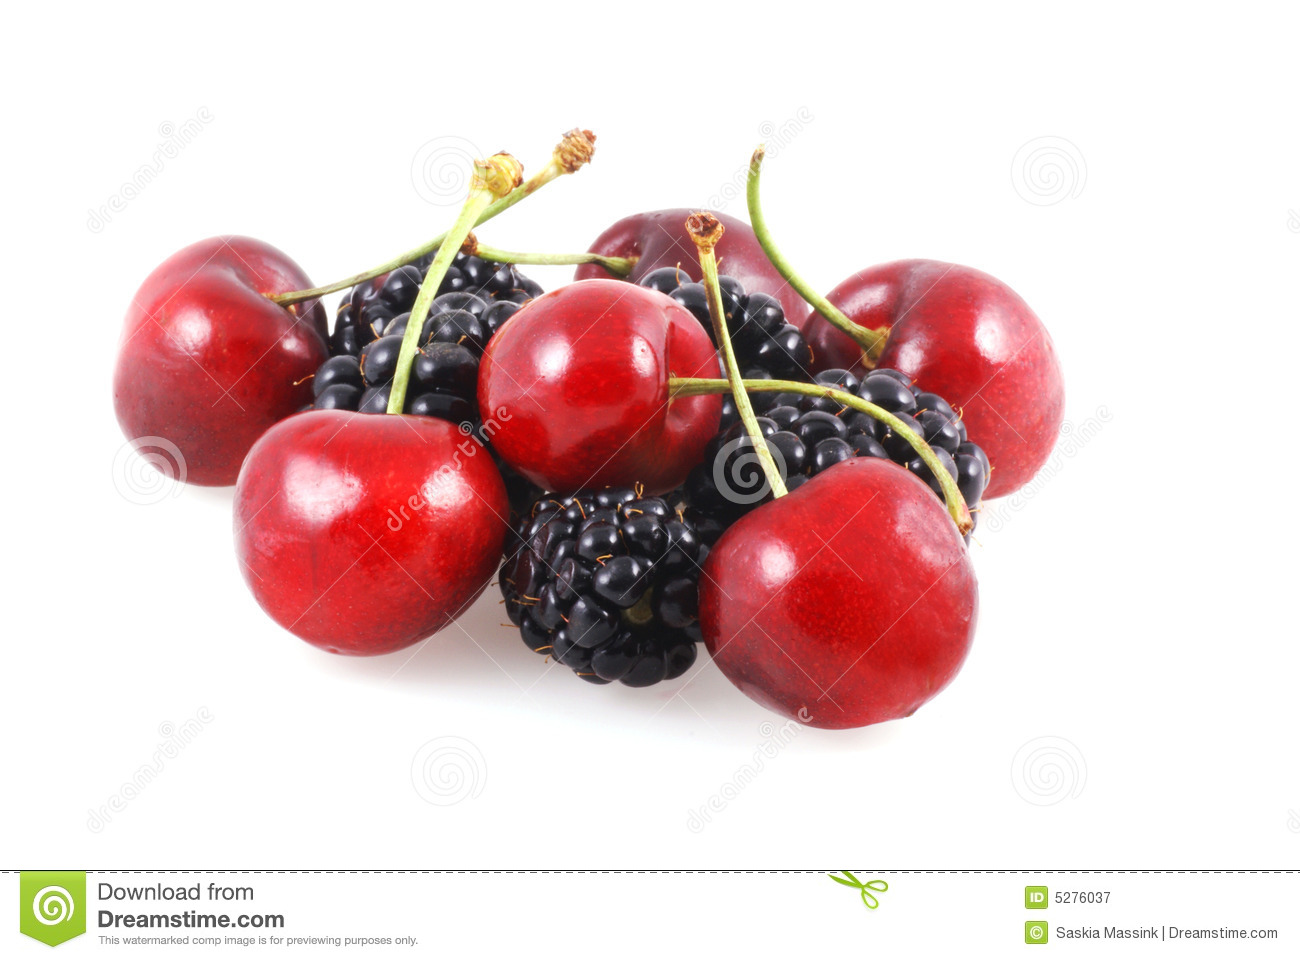 Coupon Code For Berries Unlimited. Sort by: Newsletter savings *Sale*: Yes! Keep your cash with a helpful group promotion redeemable for Newsletter savings. Reveal Coupon ***** Post navigation. It'Z Printable Coupons Frenchy Coupons Recent Deals.